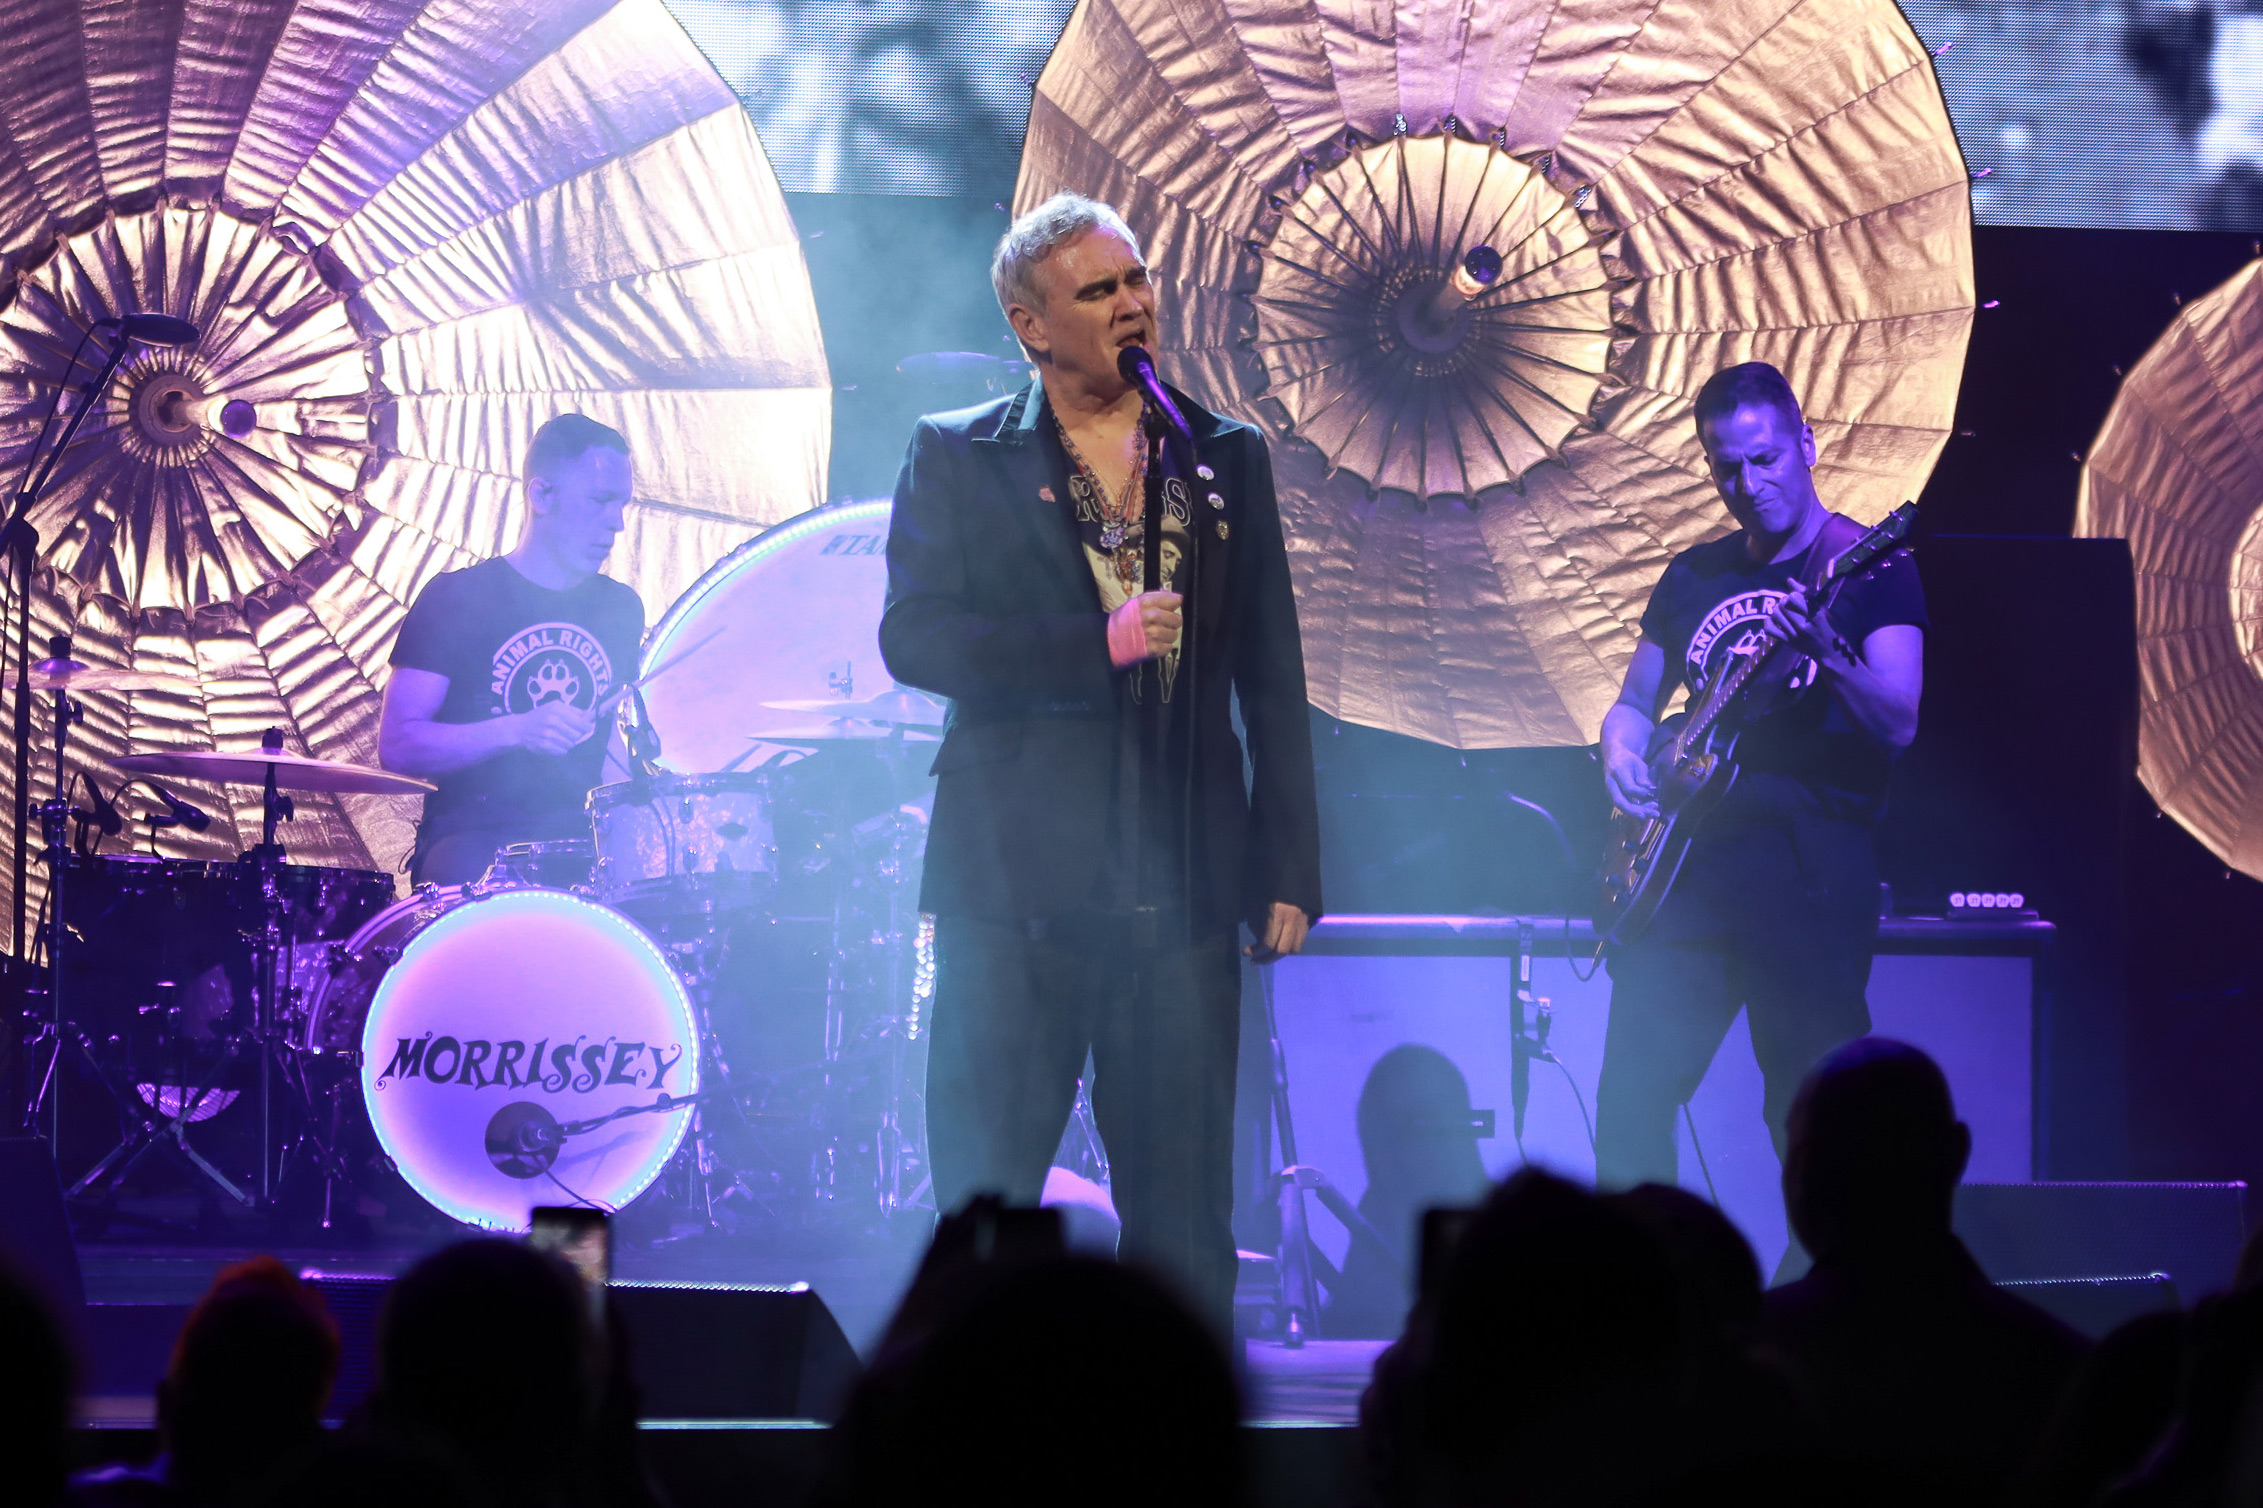 NEW YORK, NY - MAY 02: Morrissey performs at Lunt-Fontanne Theatre on May 2, 2019 in New York City. (Photo by Jason Mendez/Getty Images)